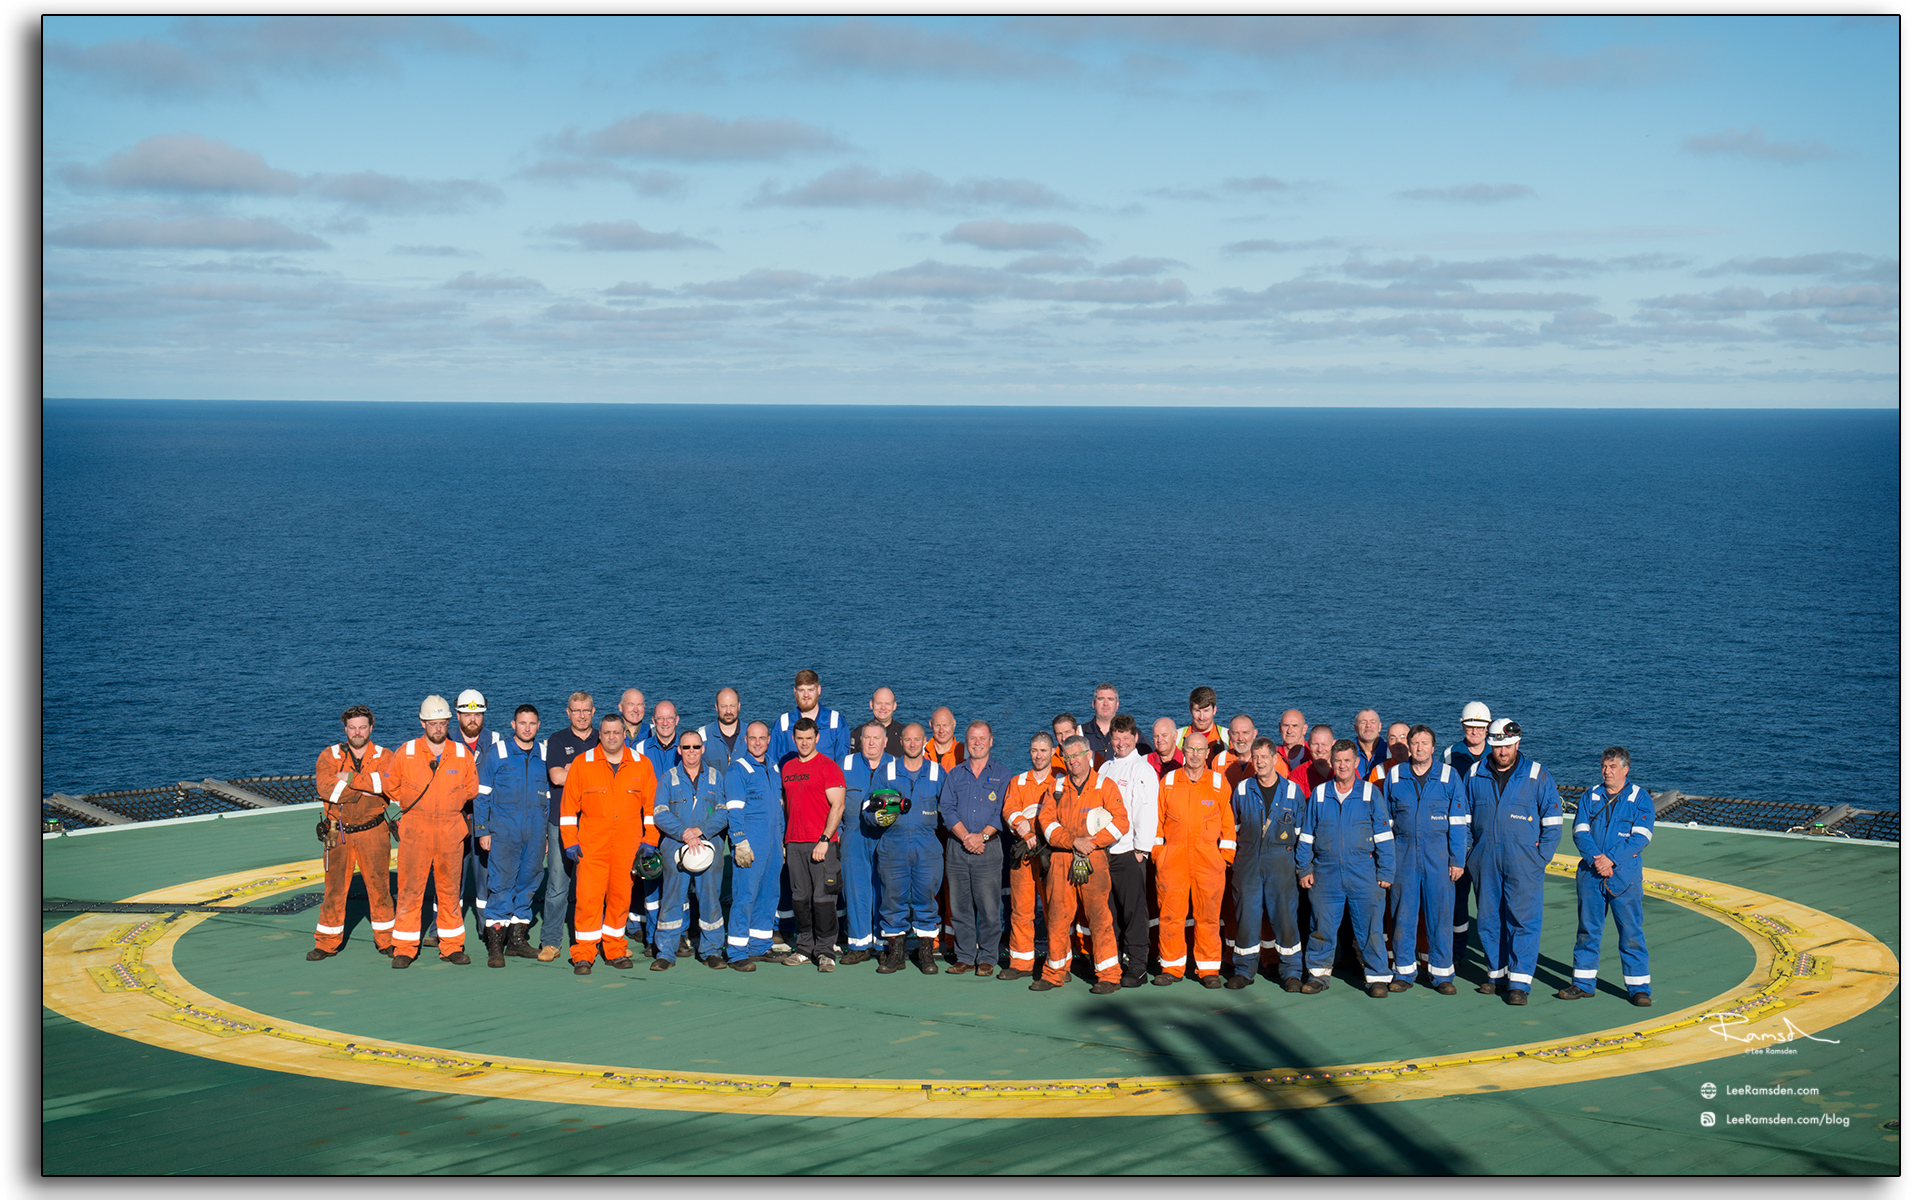 BP, Miller, Petrofac, Core crew, oil and gas industry, offshore, north sea.jpg